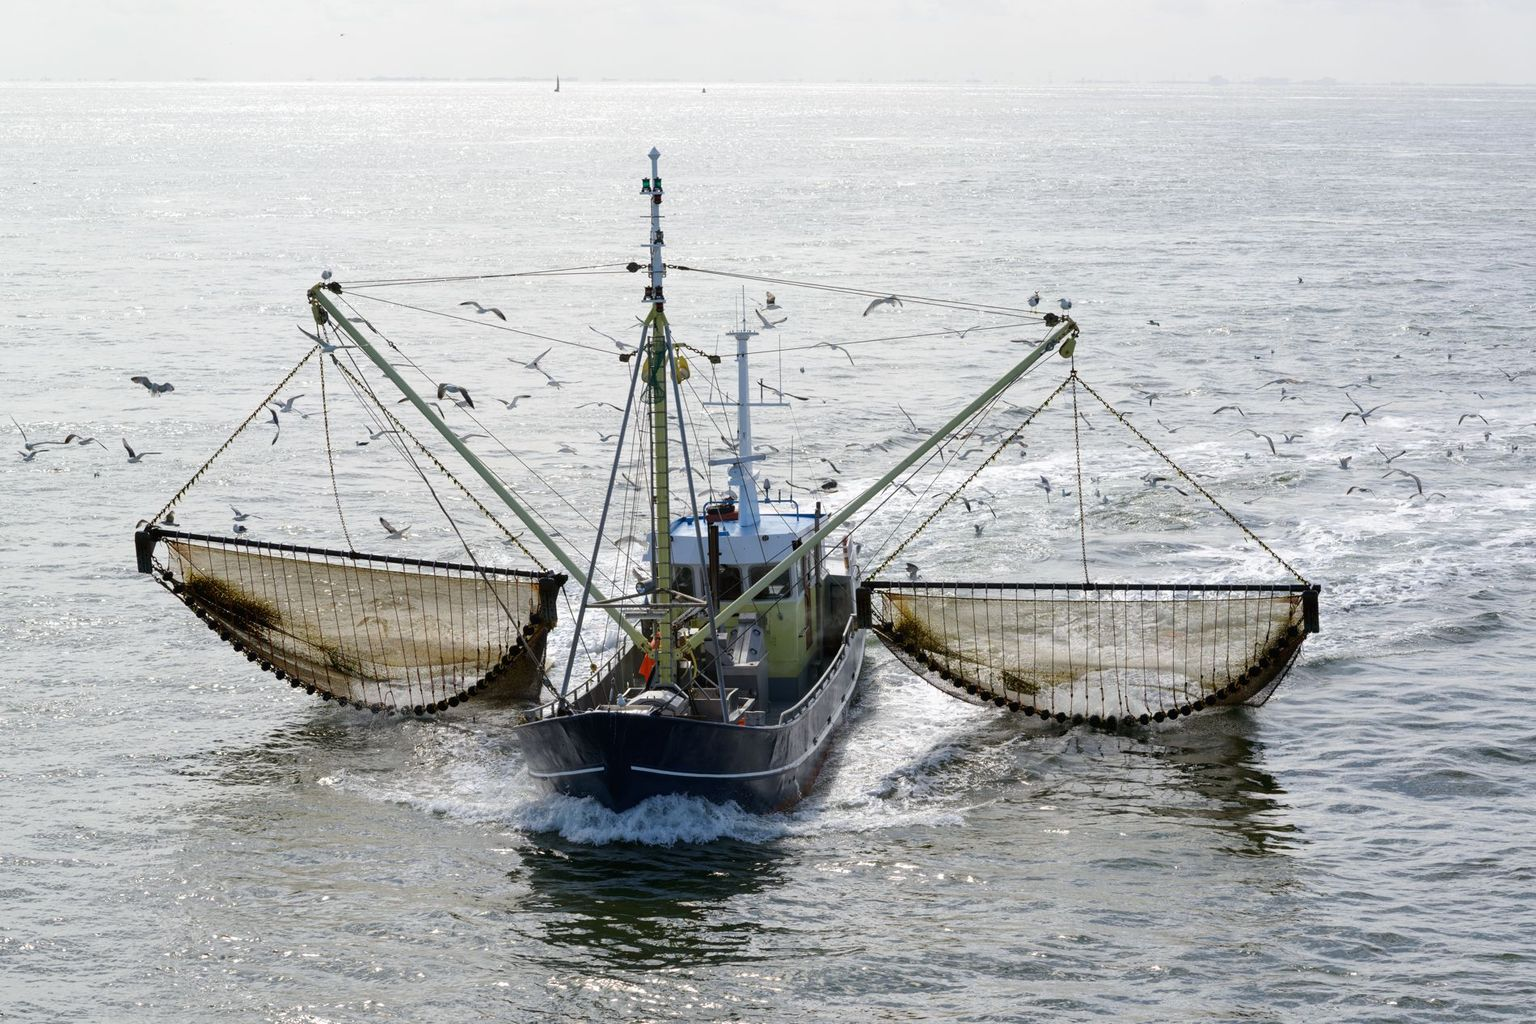 Fishing boat dragging a net through the waters of the Wadden Sea